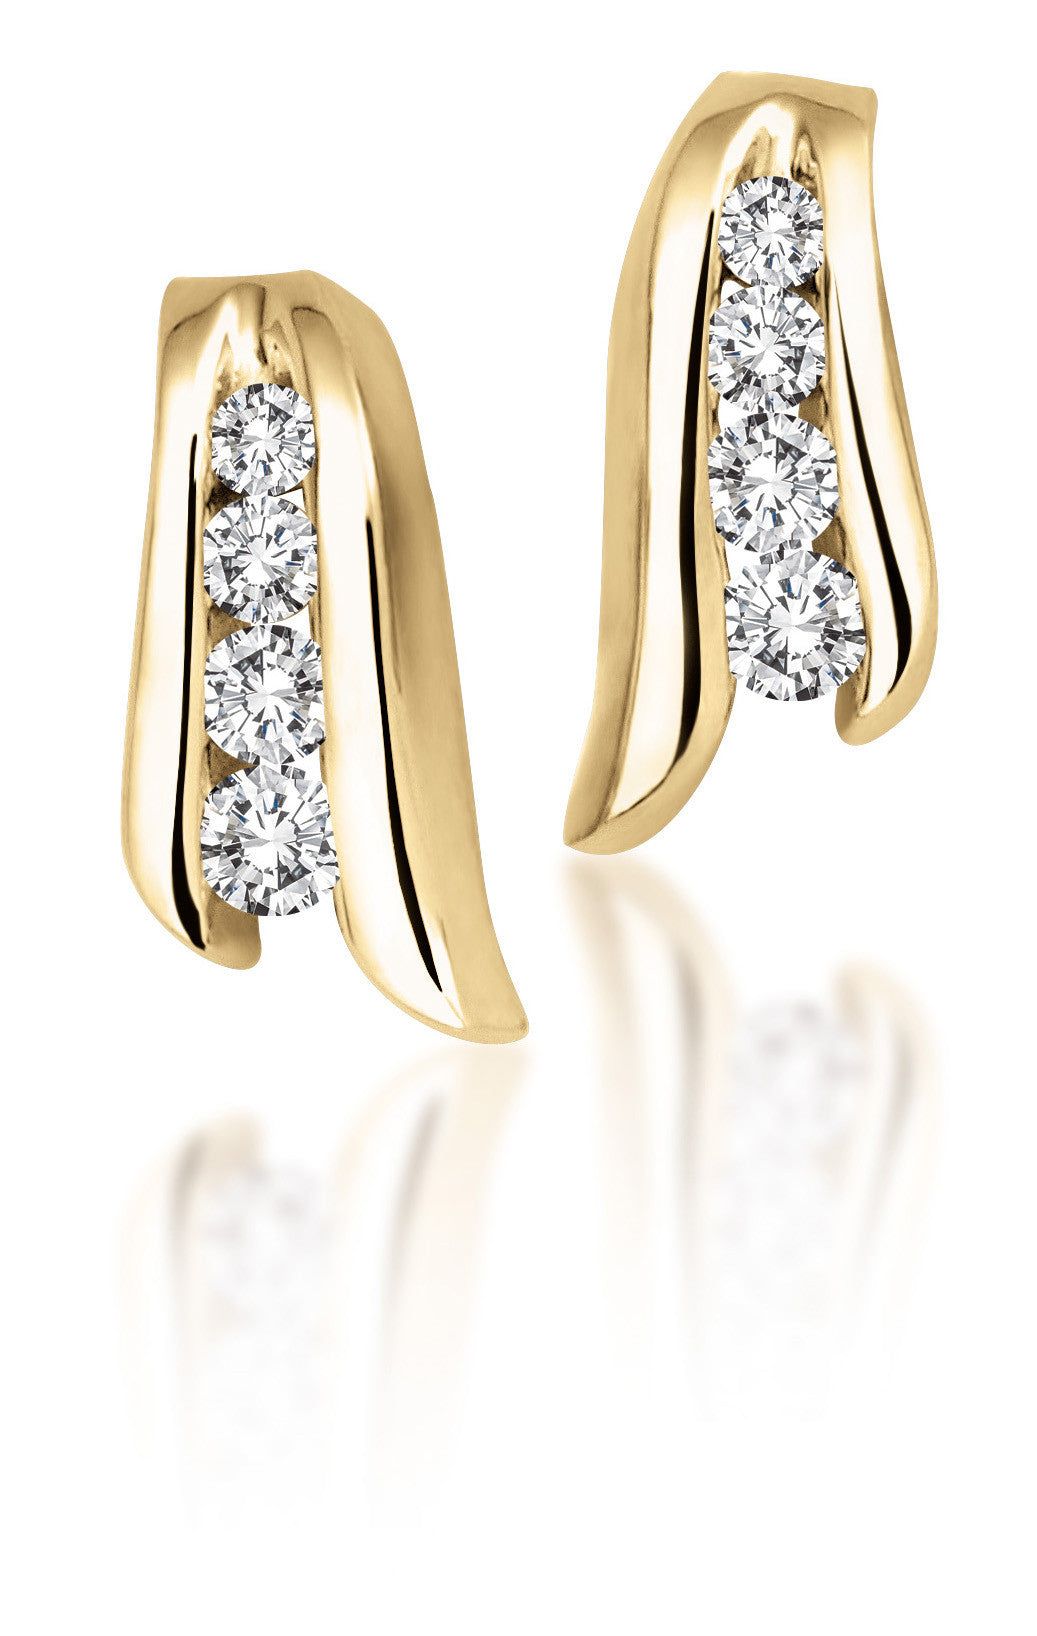 10Kt Yellow Gold Diamond Earrings